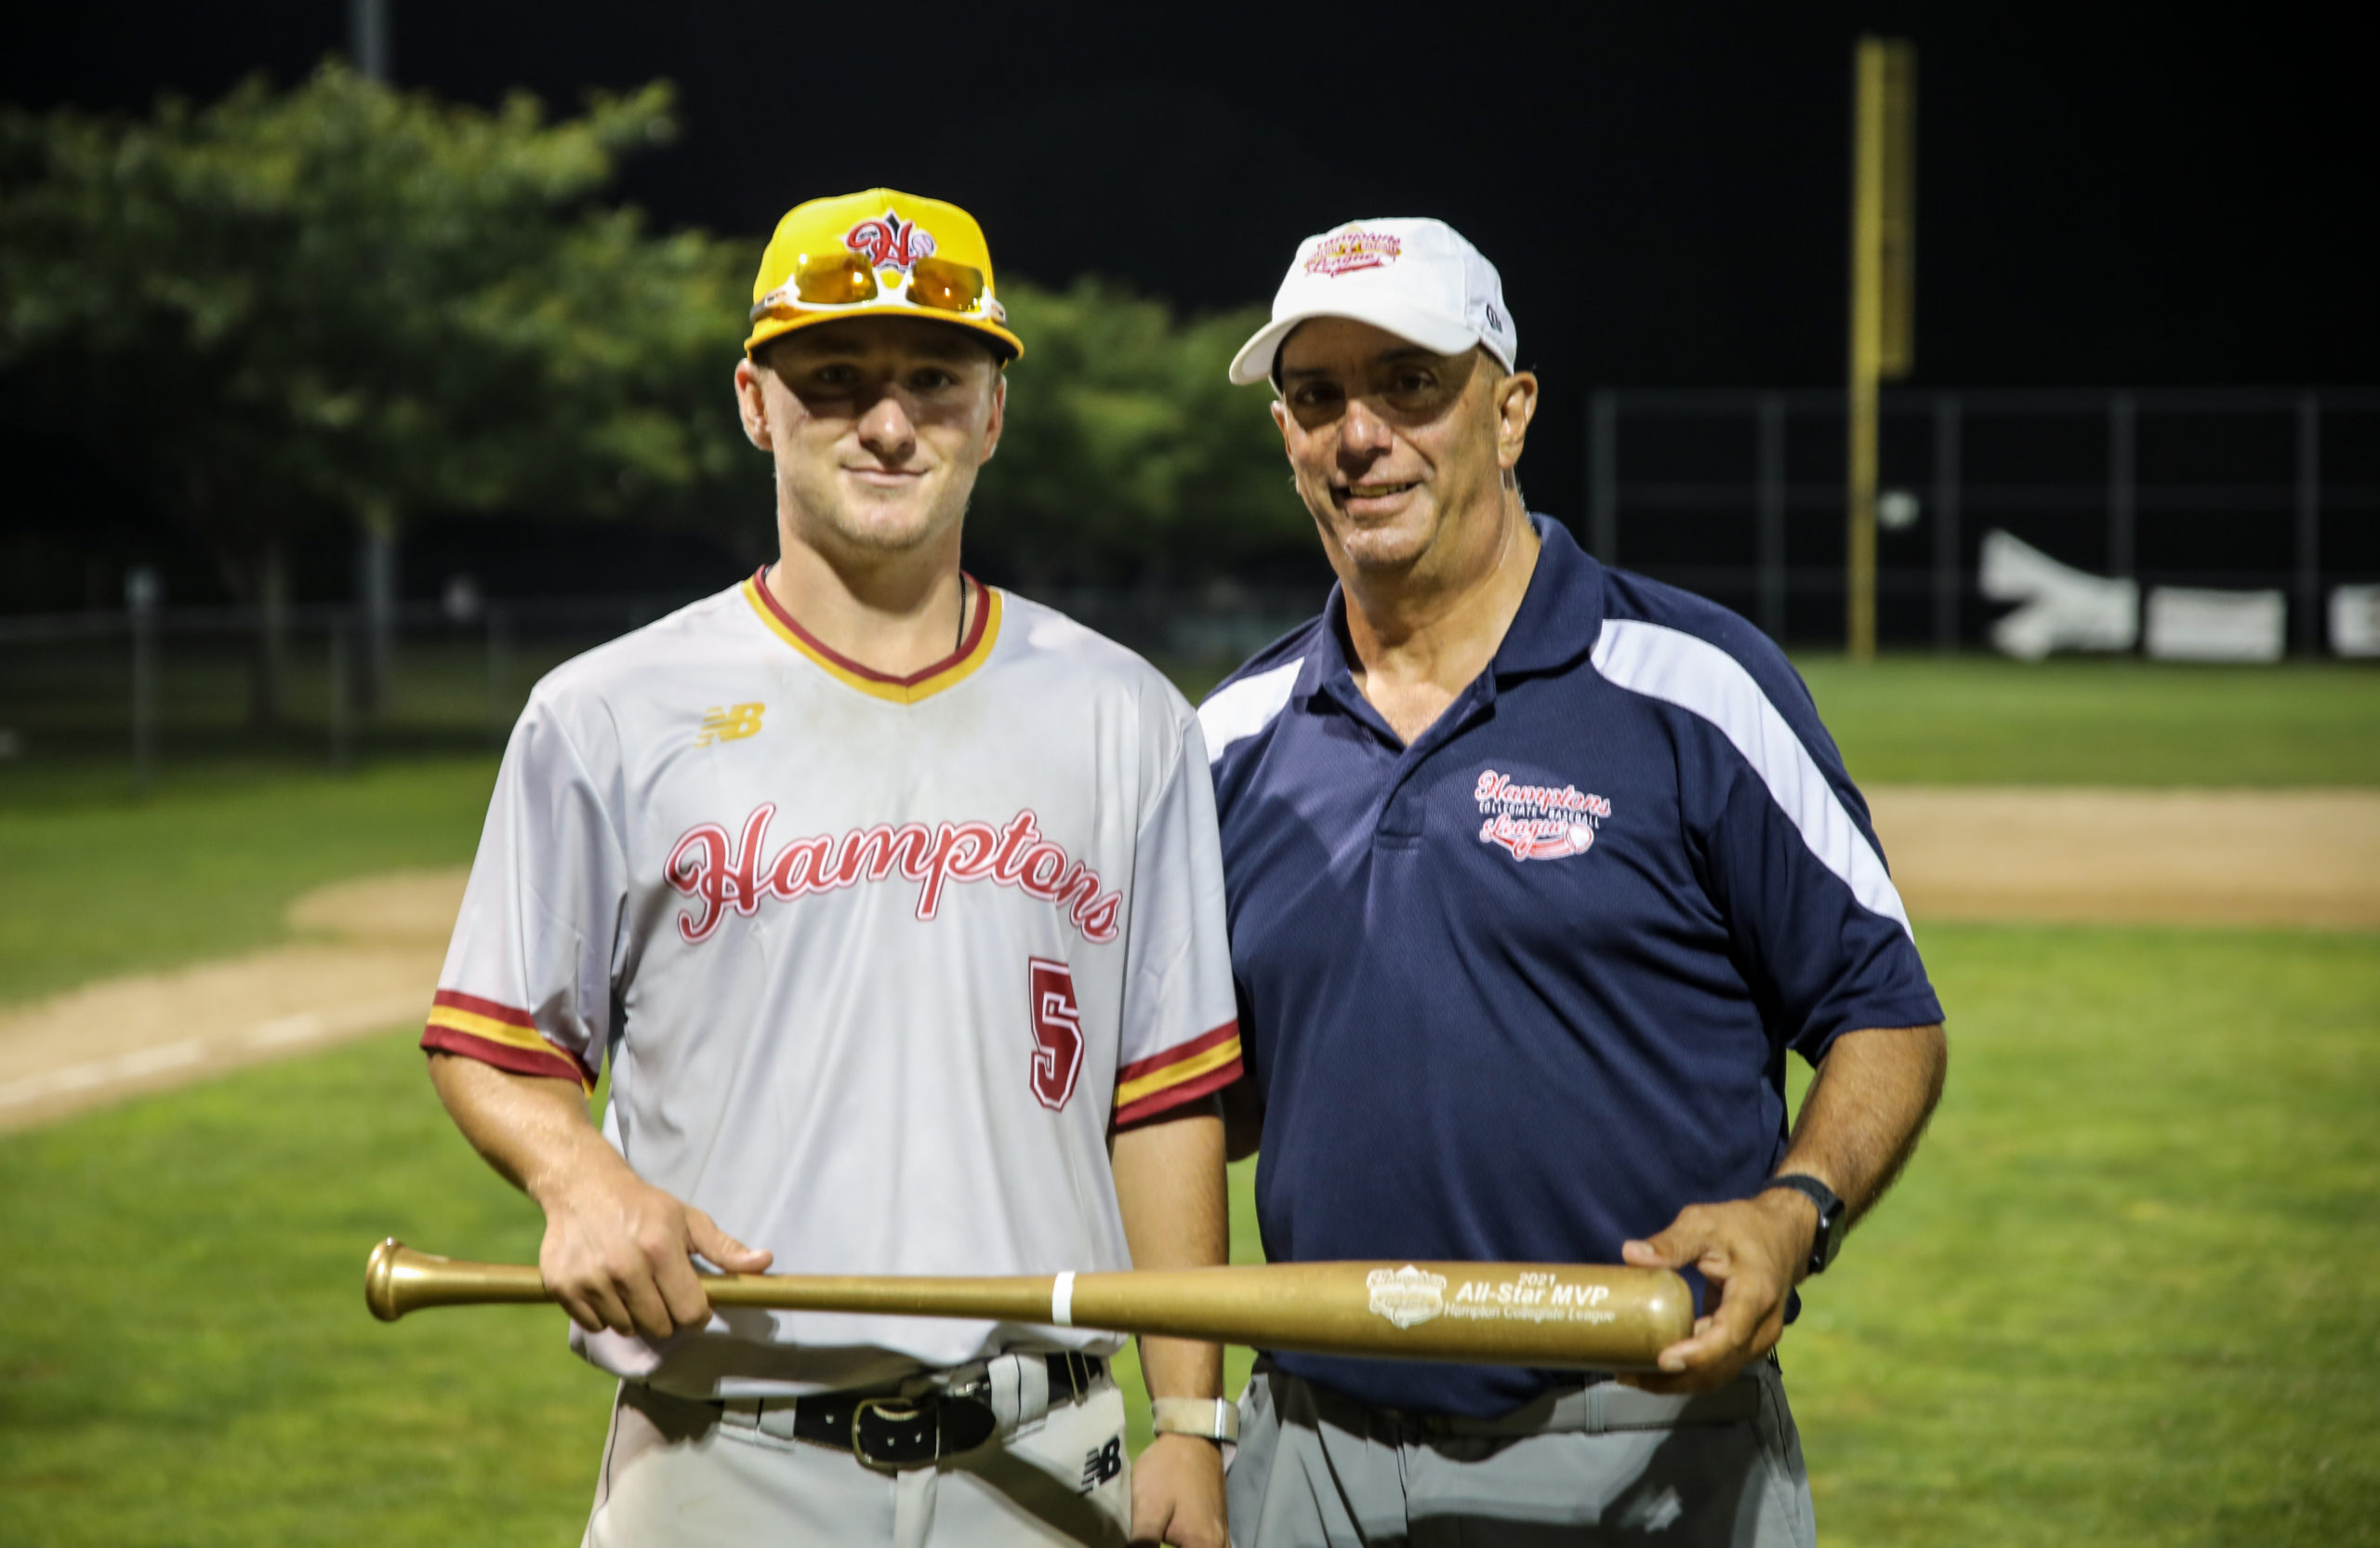 Chad Pike (Suffolk CC), left, with HCBL Commissioner Jim Pereira after being named MVP of the HCBL All-Star Game.